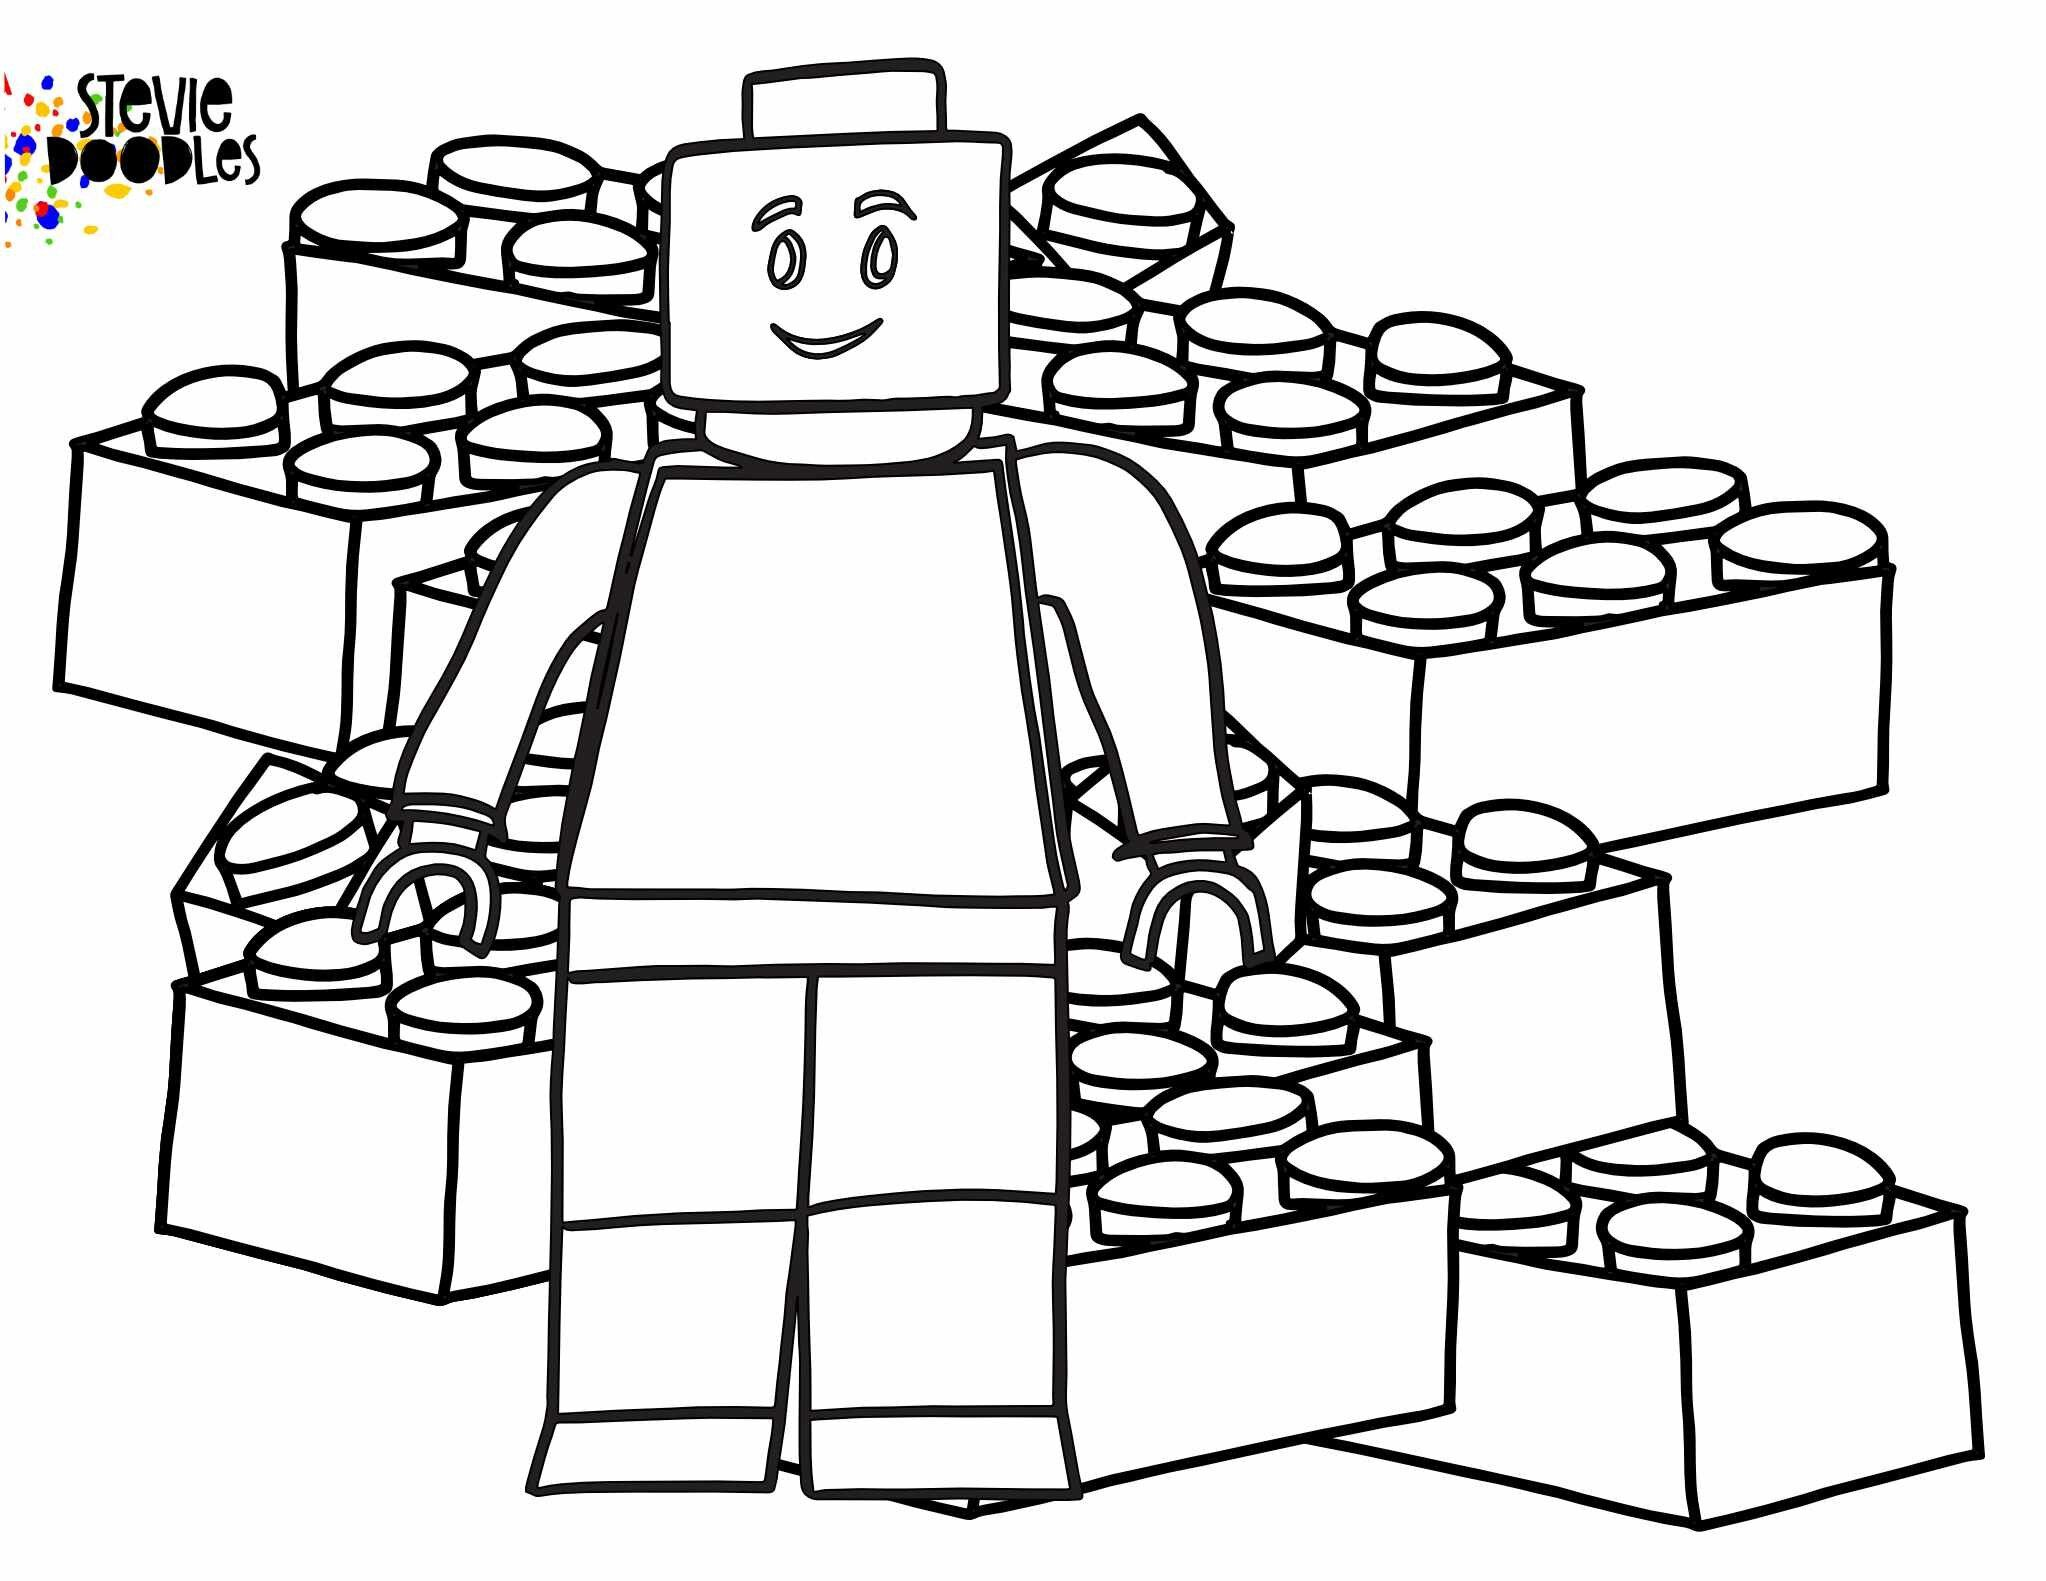 Free Lego Coloring Pages Stevie Doodles Lego Coloring Pages Lego Coloring Lego Coloring Sheet